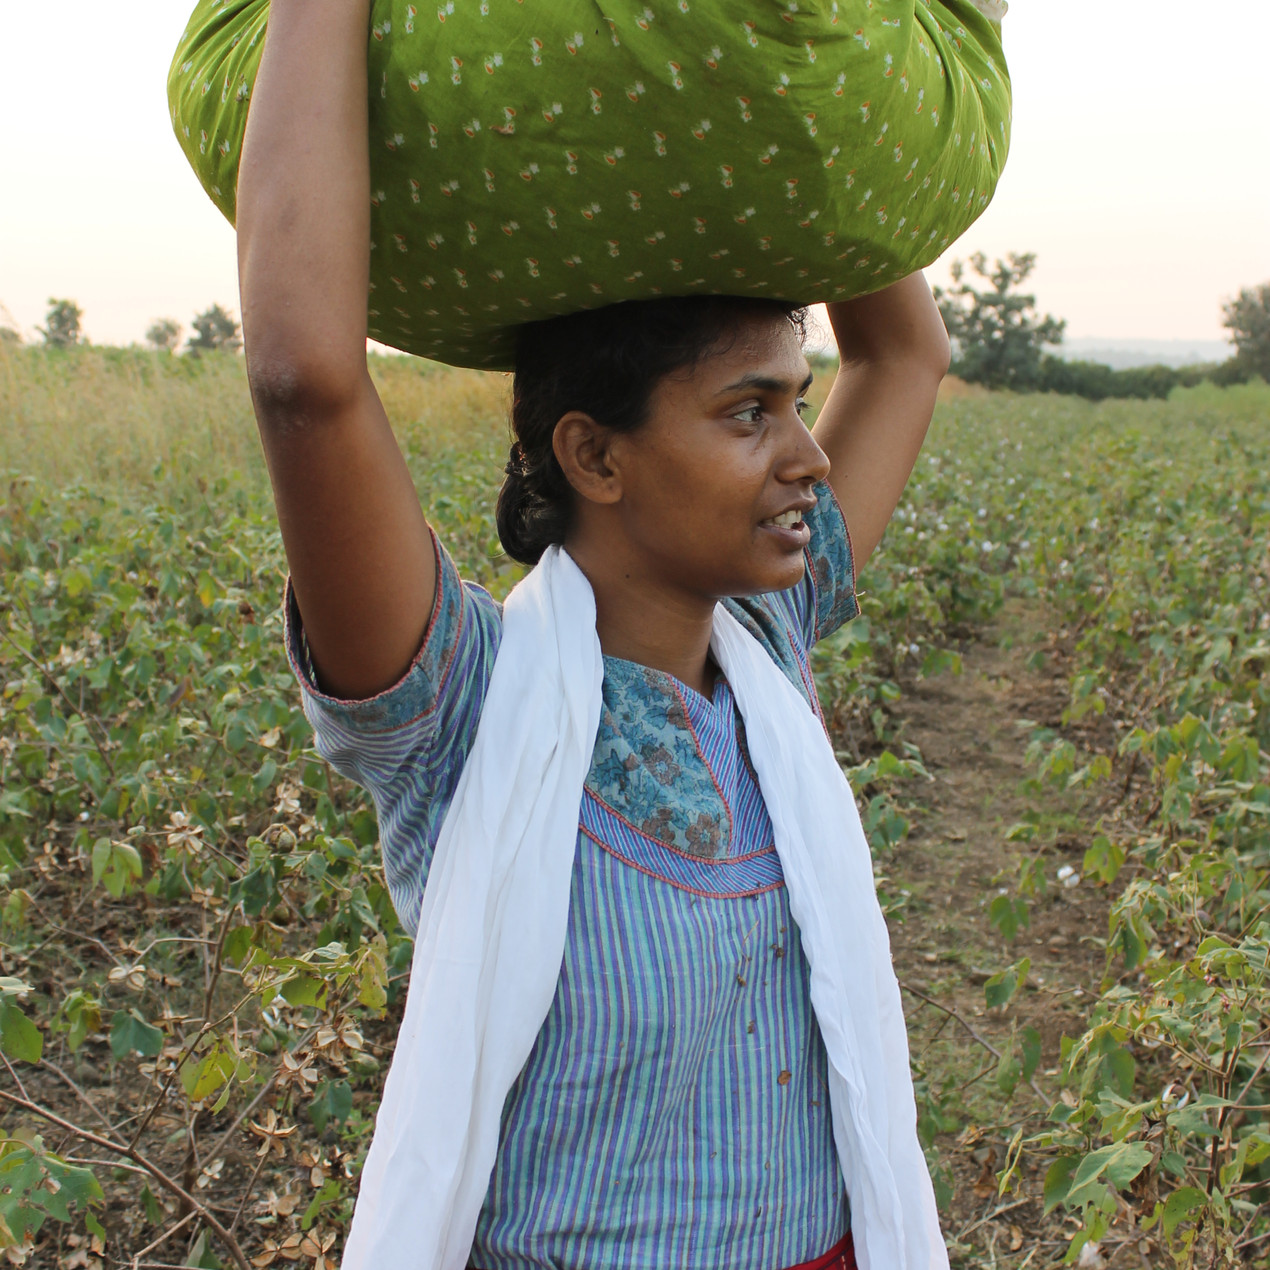 Shubhada carries our cotton